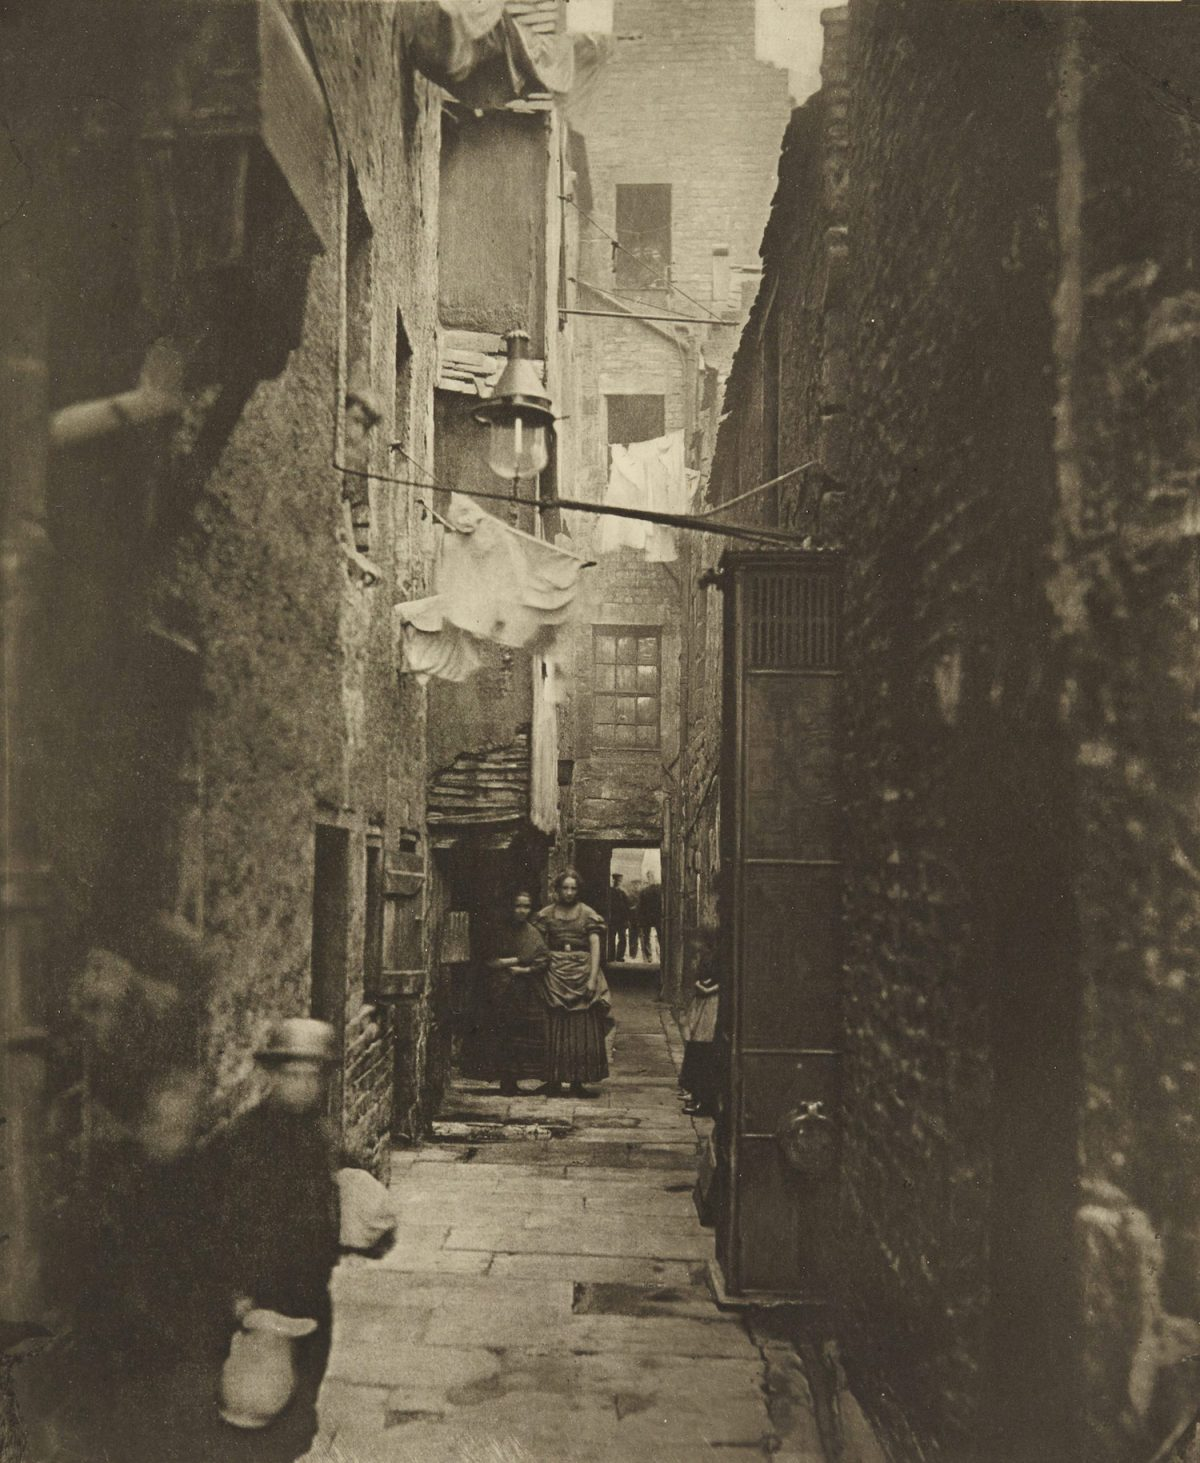 Thomas Annan, photography, Glasgow, 1800s